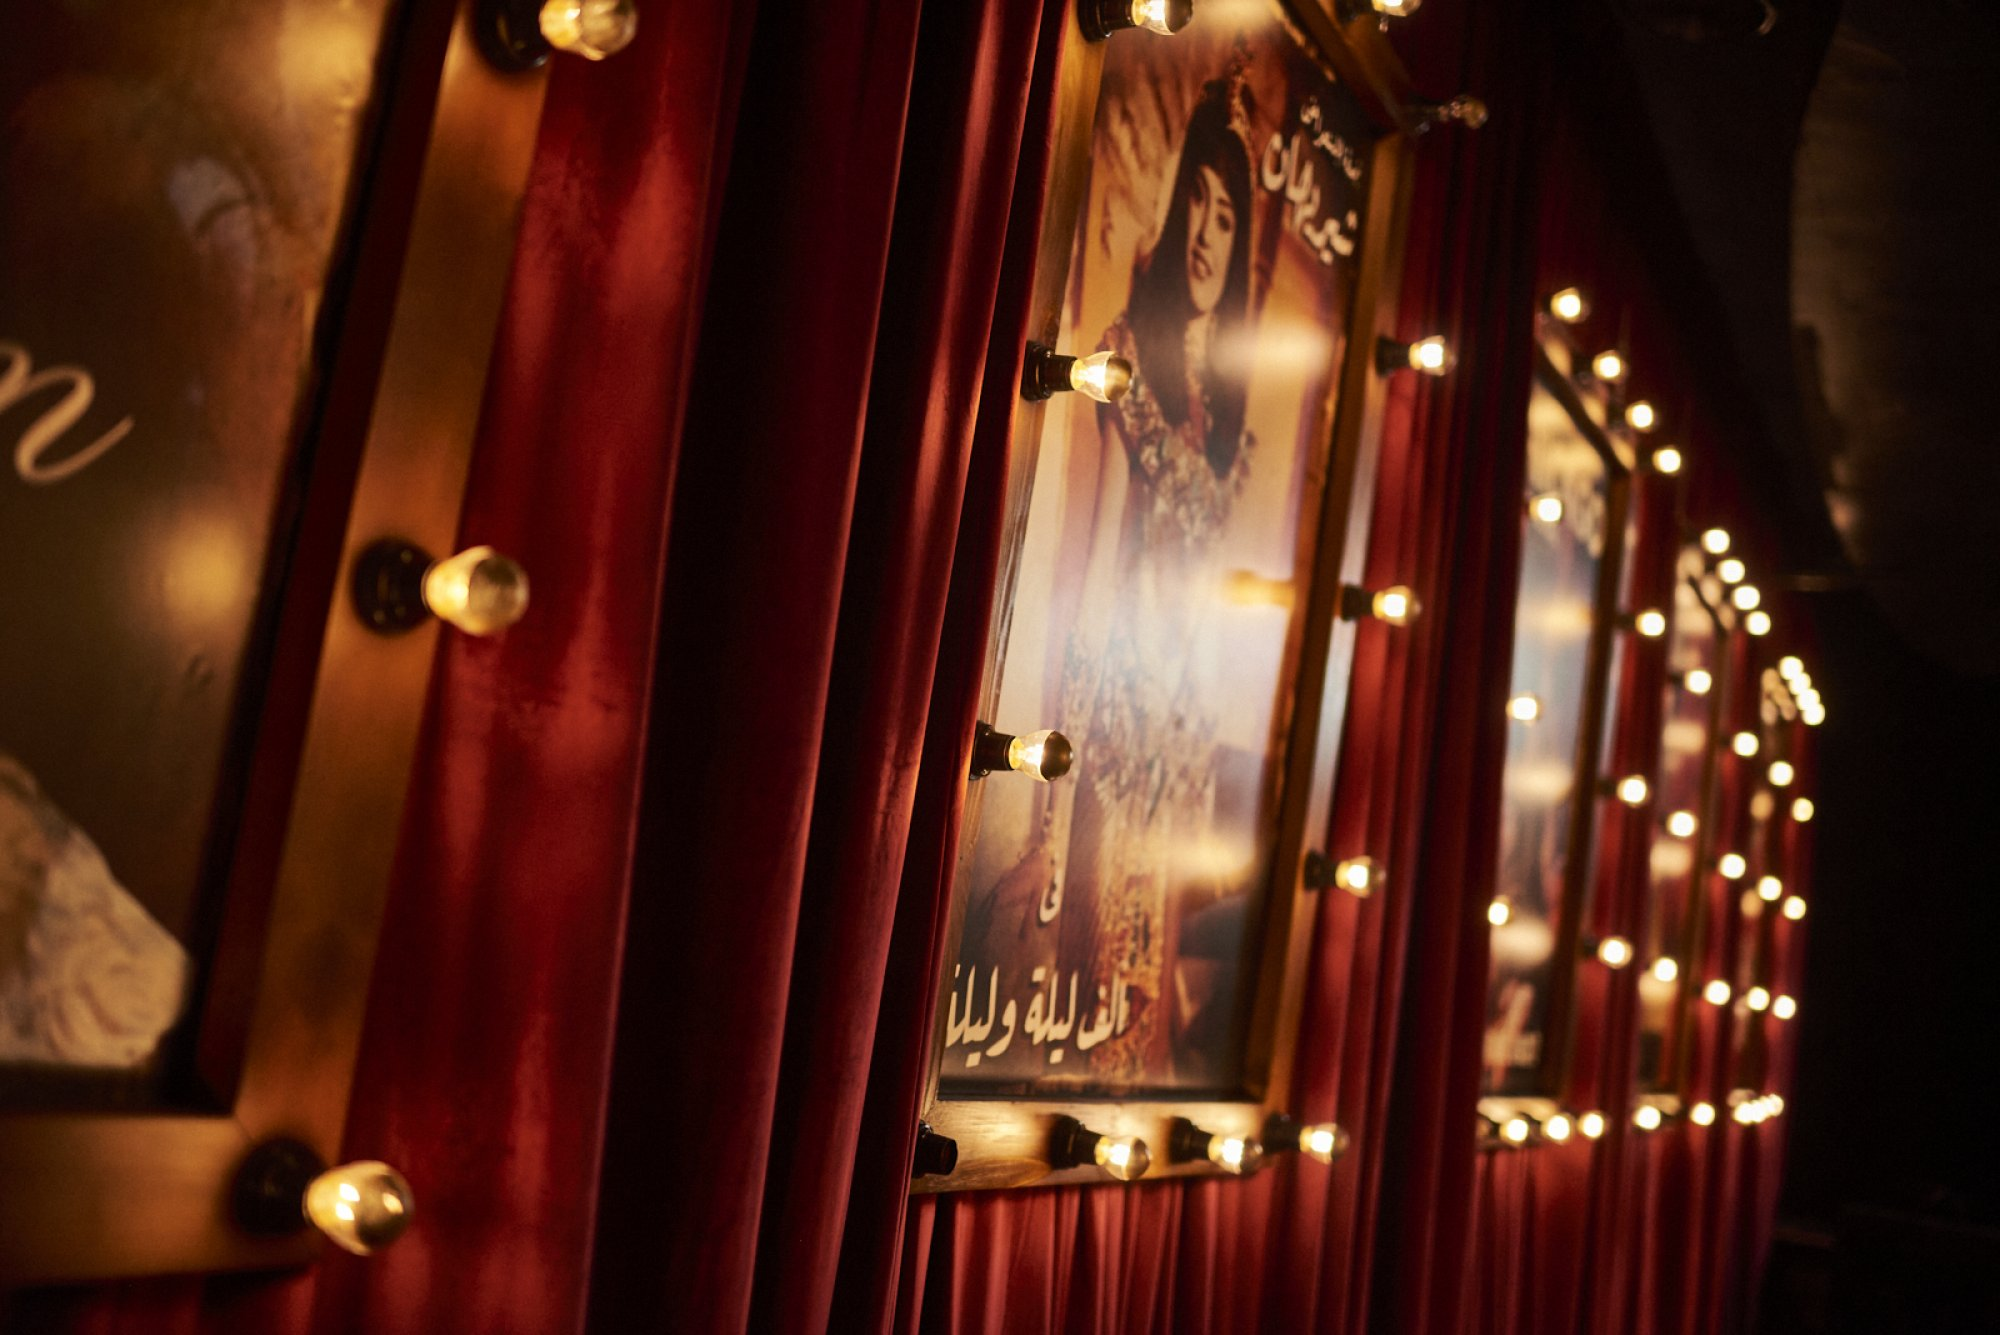 First Look: New Nightlife Venue The Theater at Fairmont Dubai